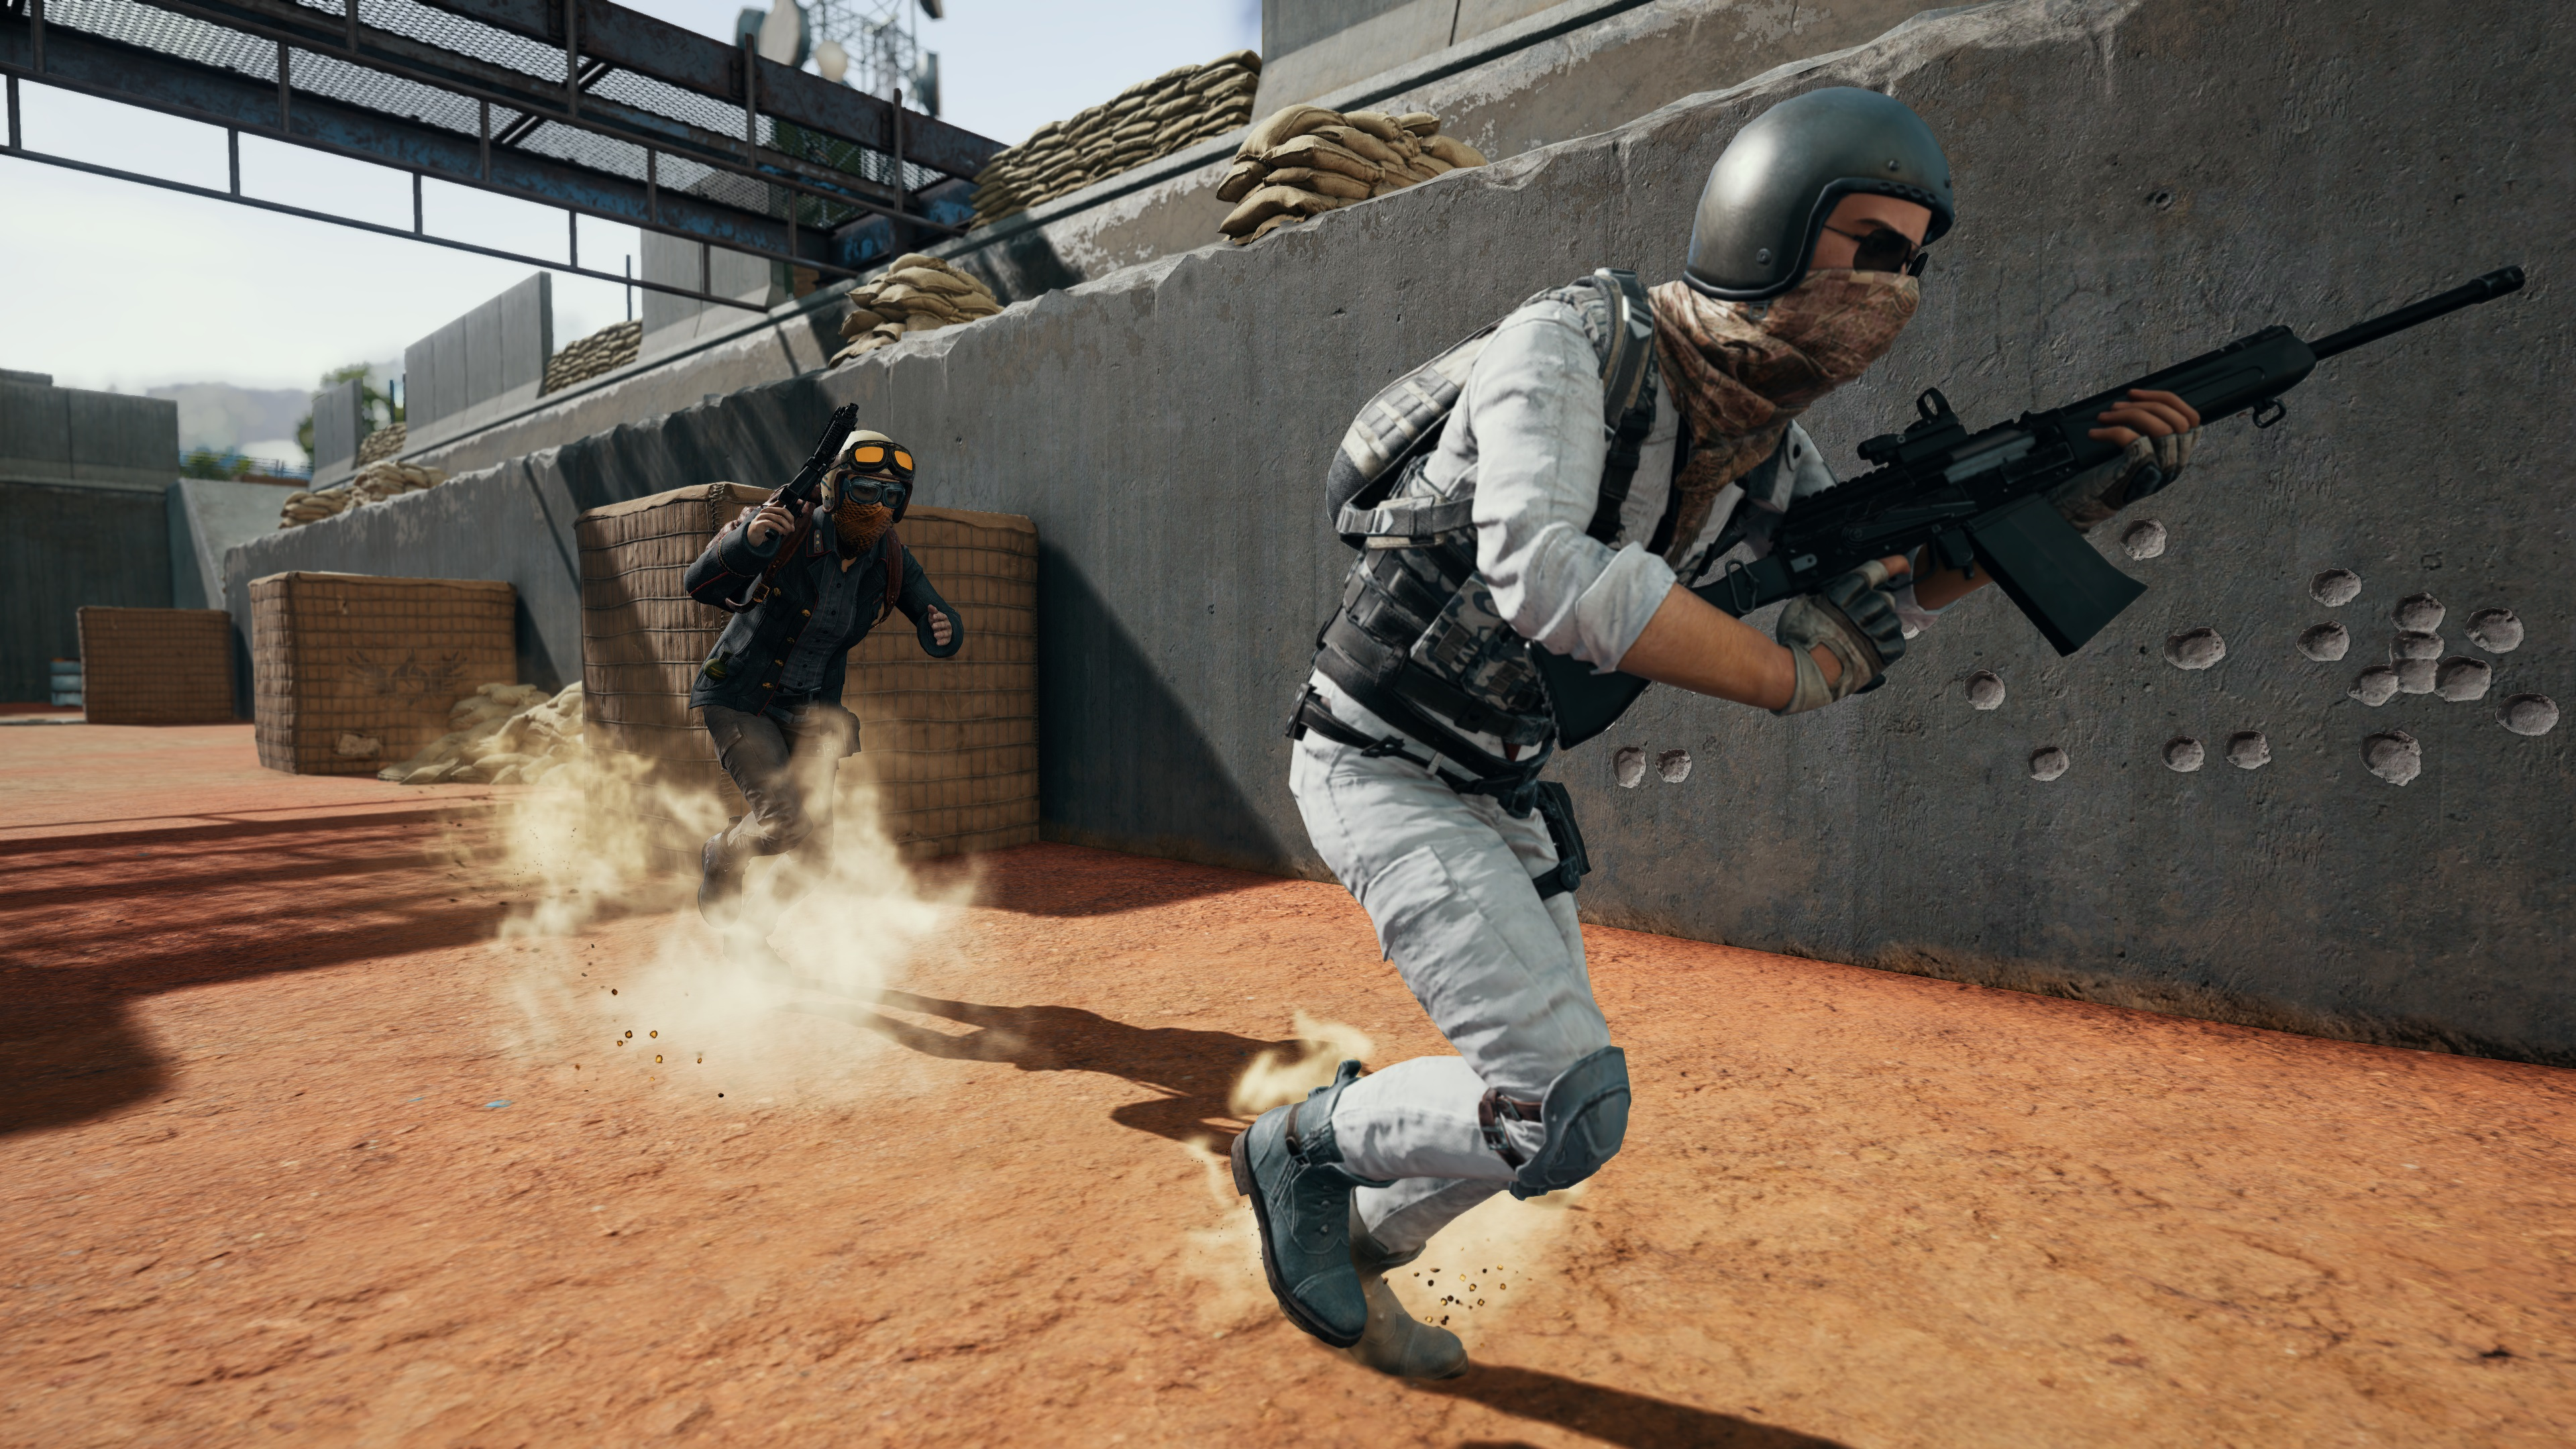 A player dashes to safety in PlayerUnknown's Battlegrounds.